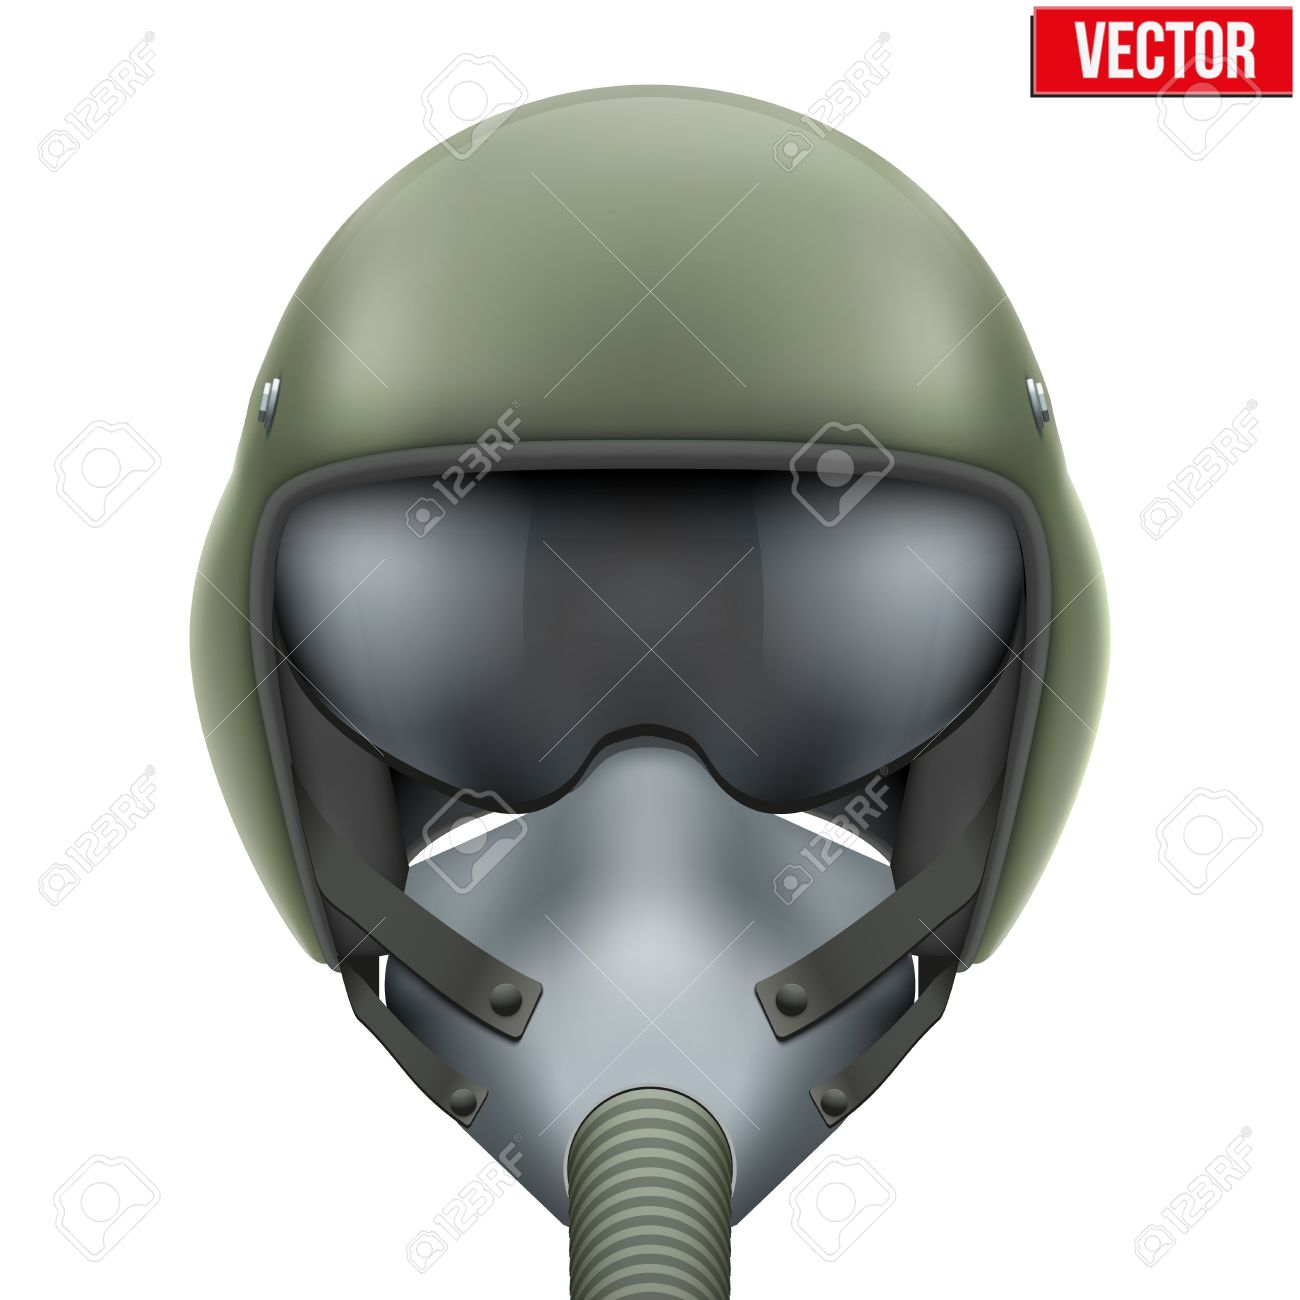 ee54d77aad Military flight fighter pilot helmet of Air Force with oxygen mask.  illustration isolated on white